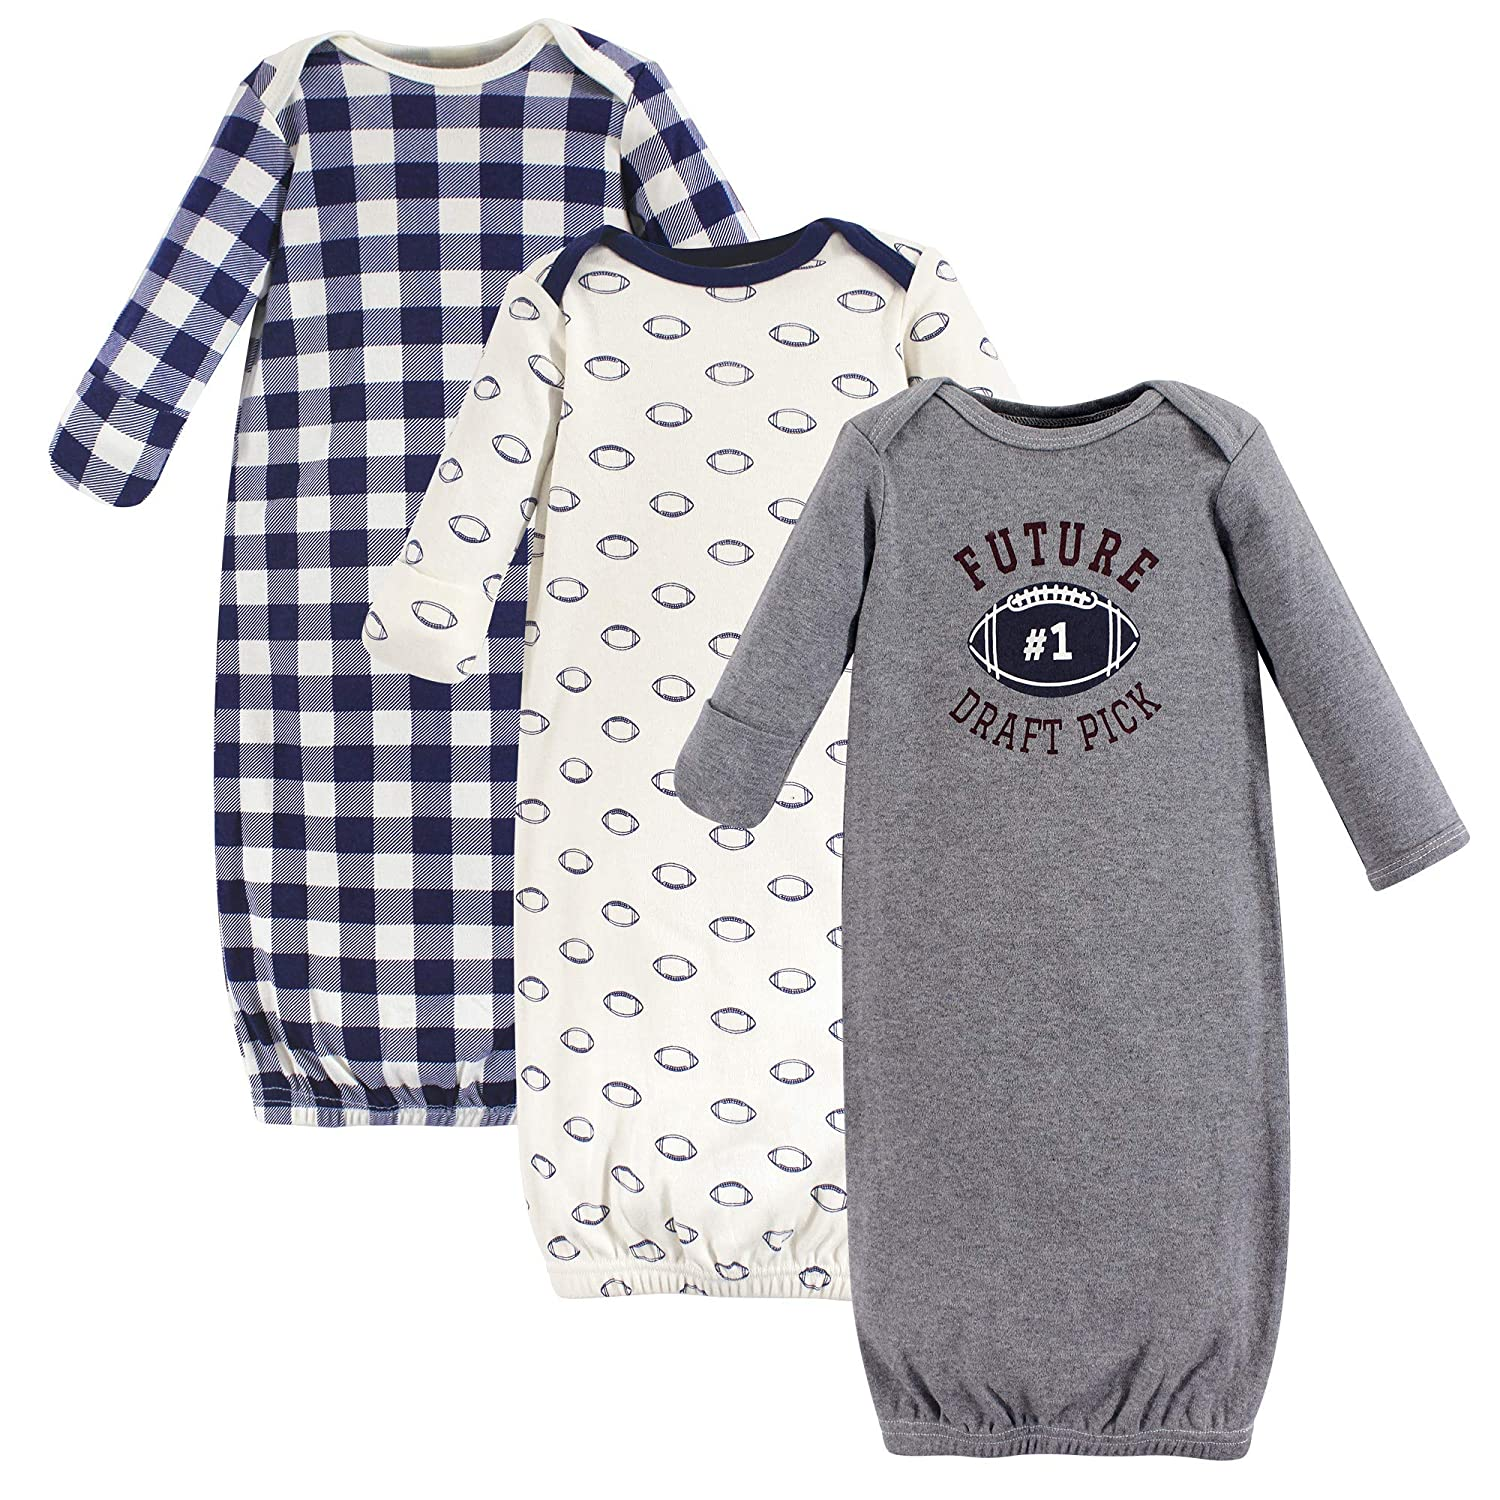 Hudson Baby Unisex Baby Cotton Gowns